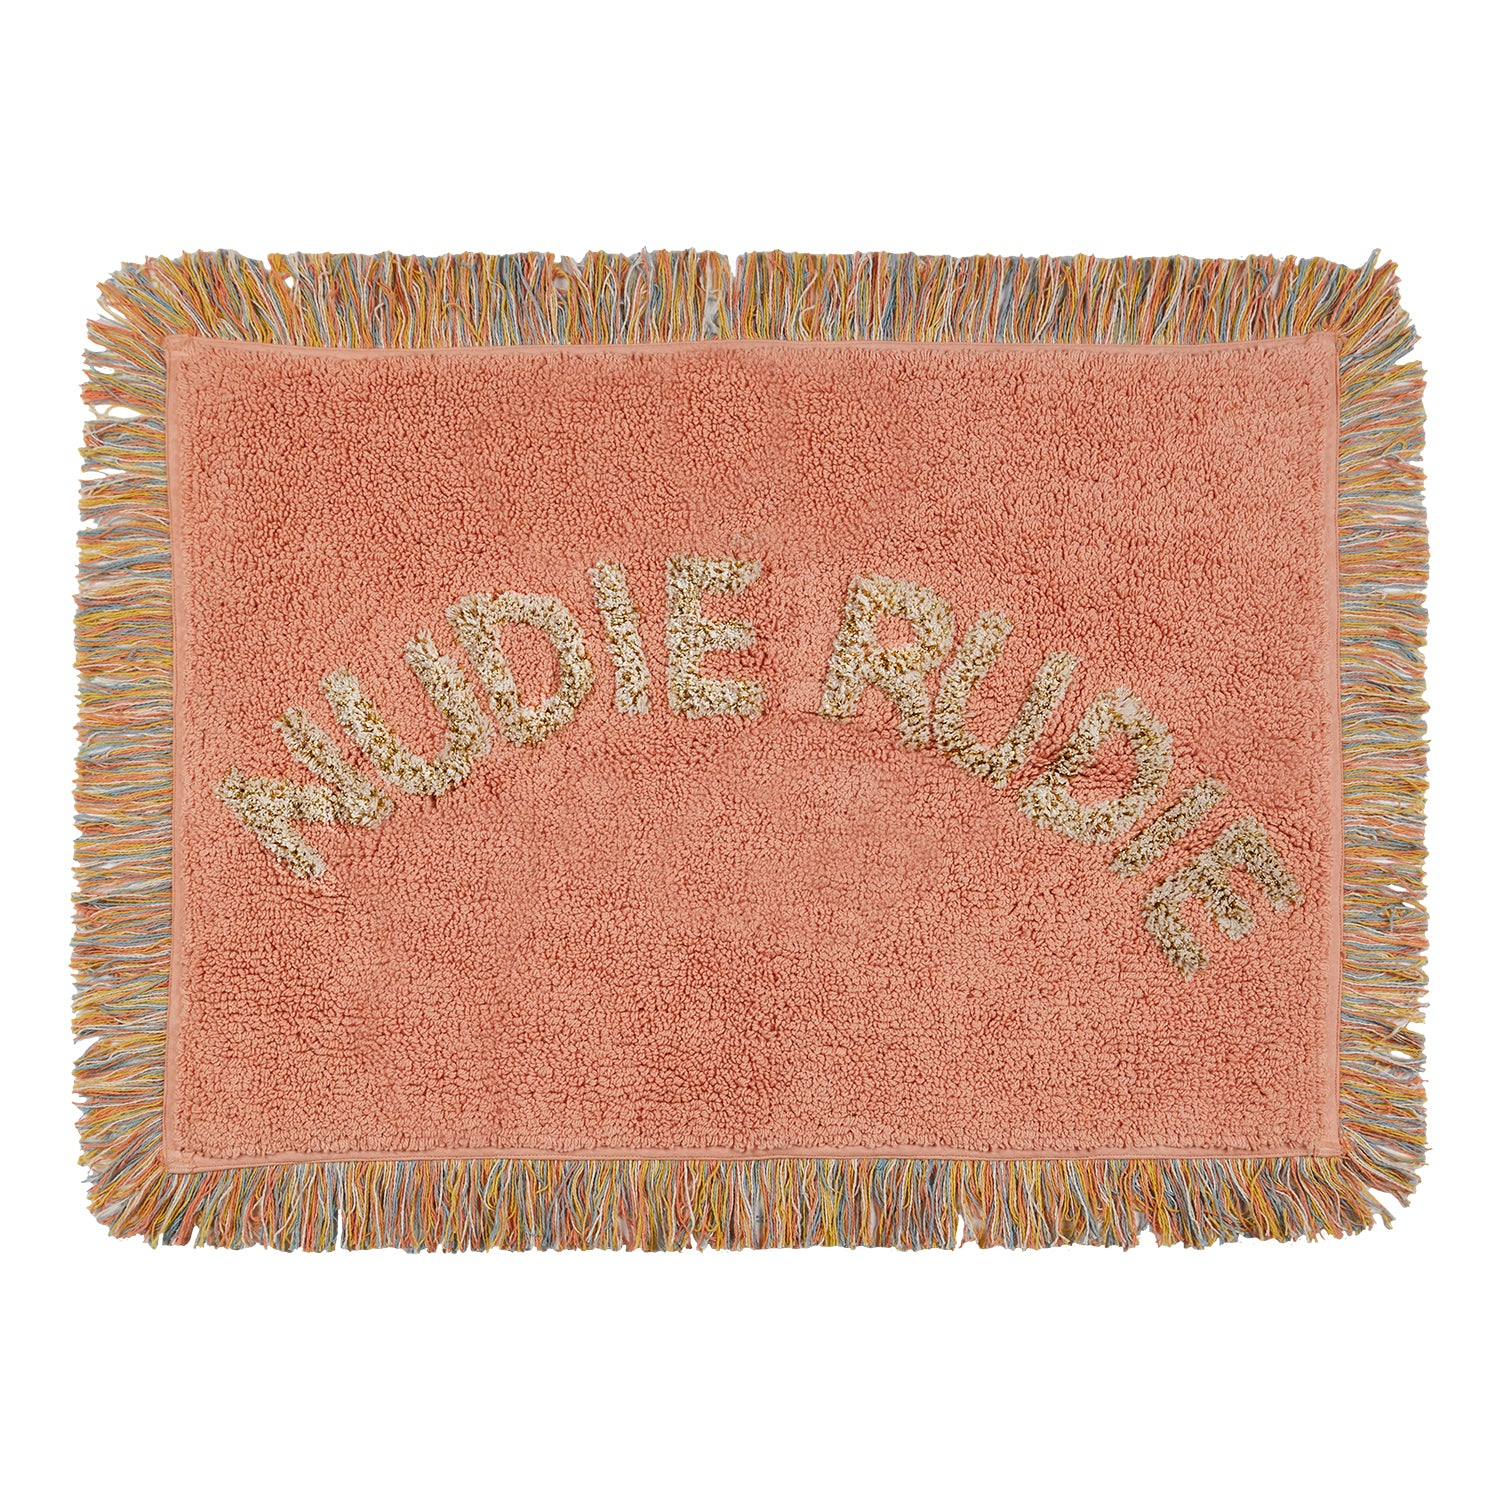 Tula Nudie Bath Mat - Xmas Limited Edition